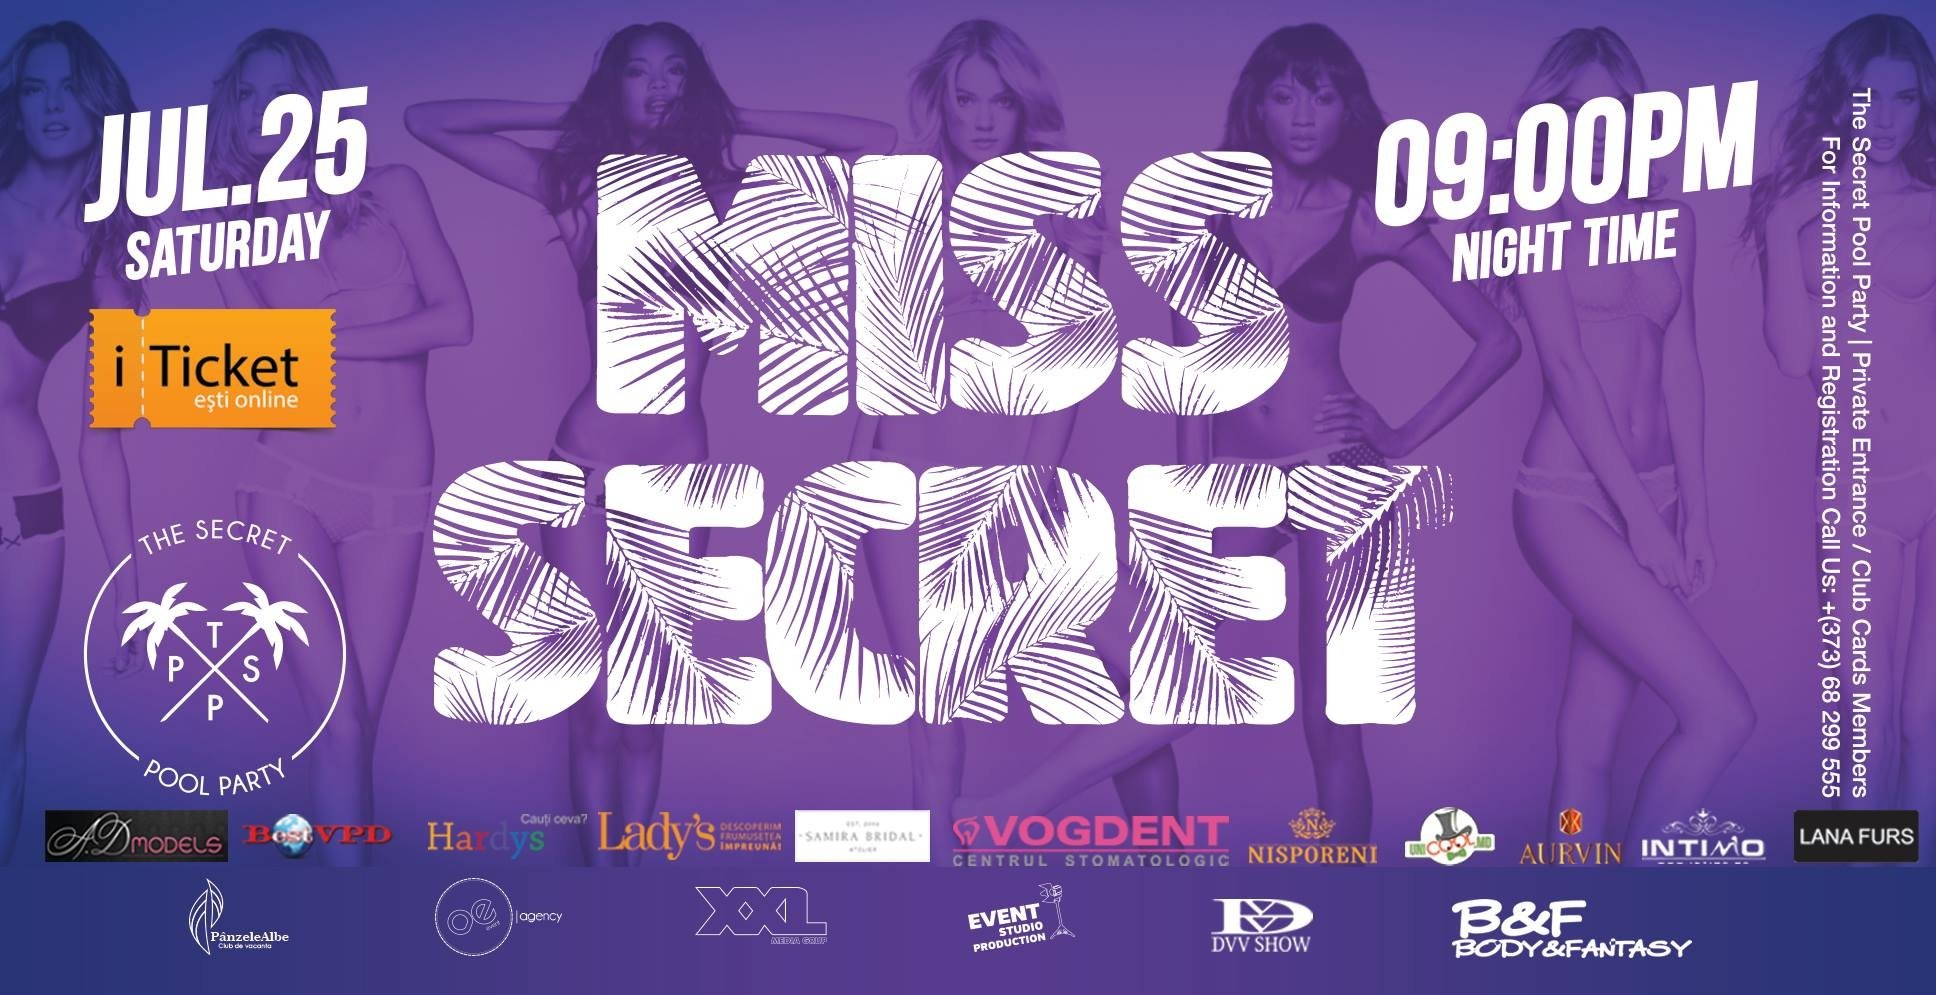 MISS SECRET - THE SECRET POOL PARTY